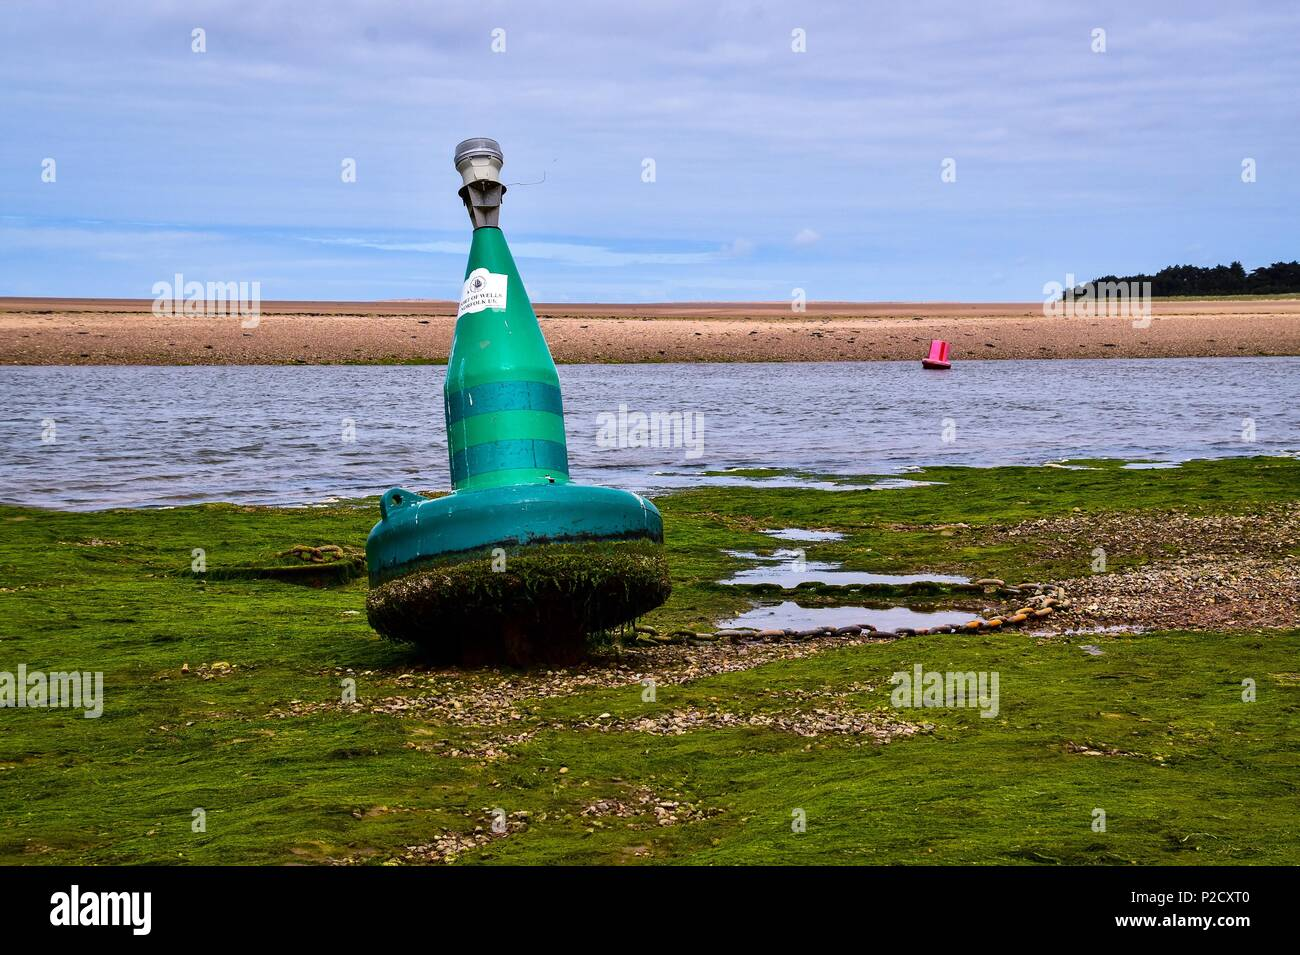 Starboard channel marker buoy - Stock Image